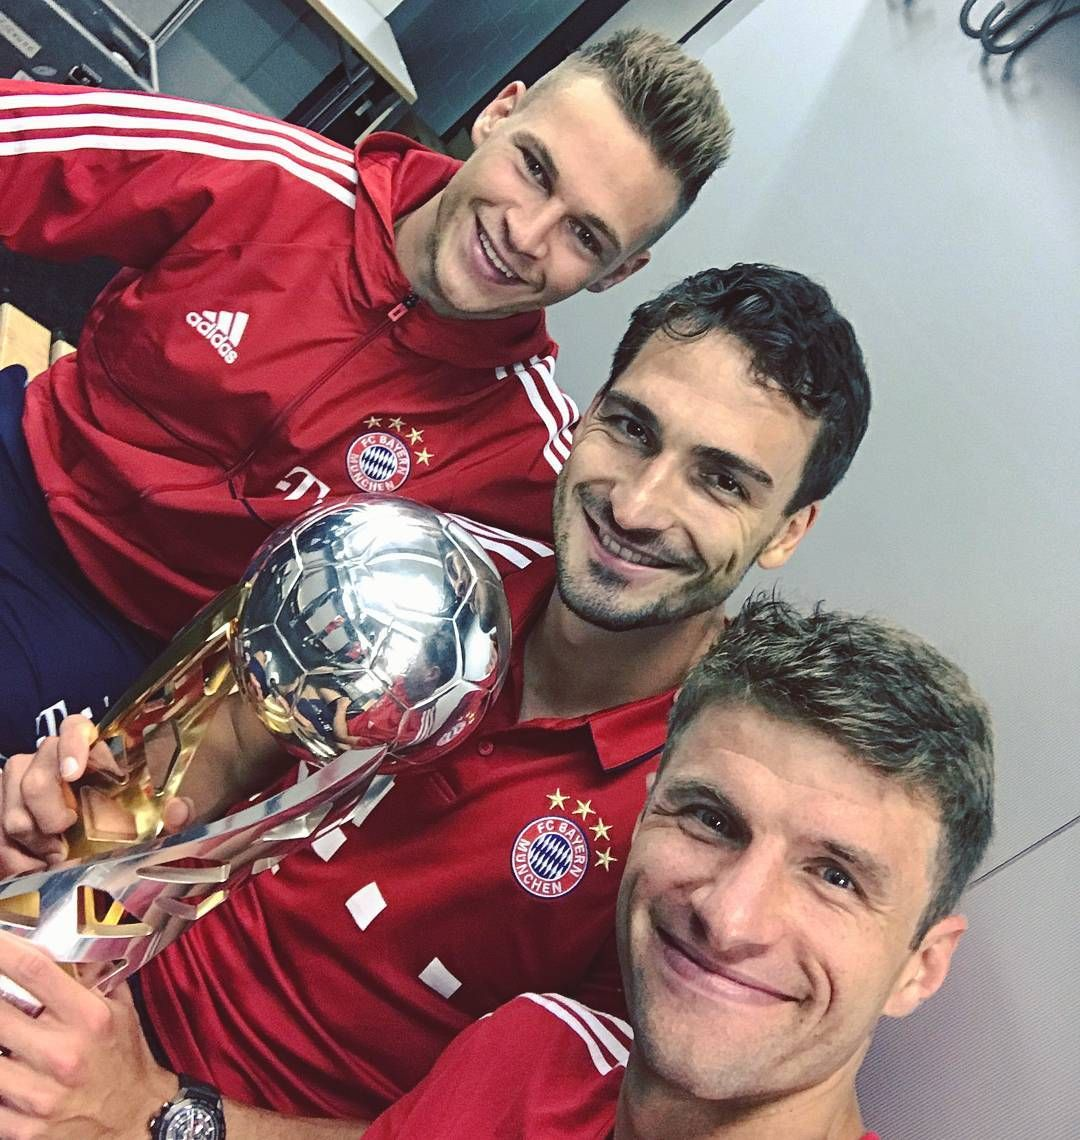 Supercup: Kimmich, Hummels And Muller With The Supercup Trophy